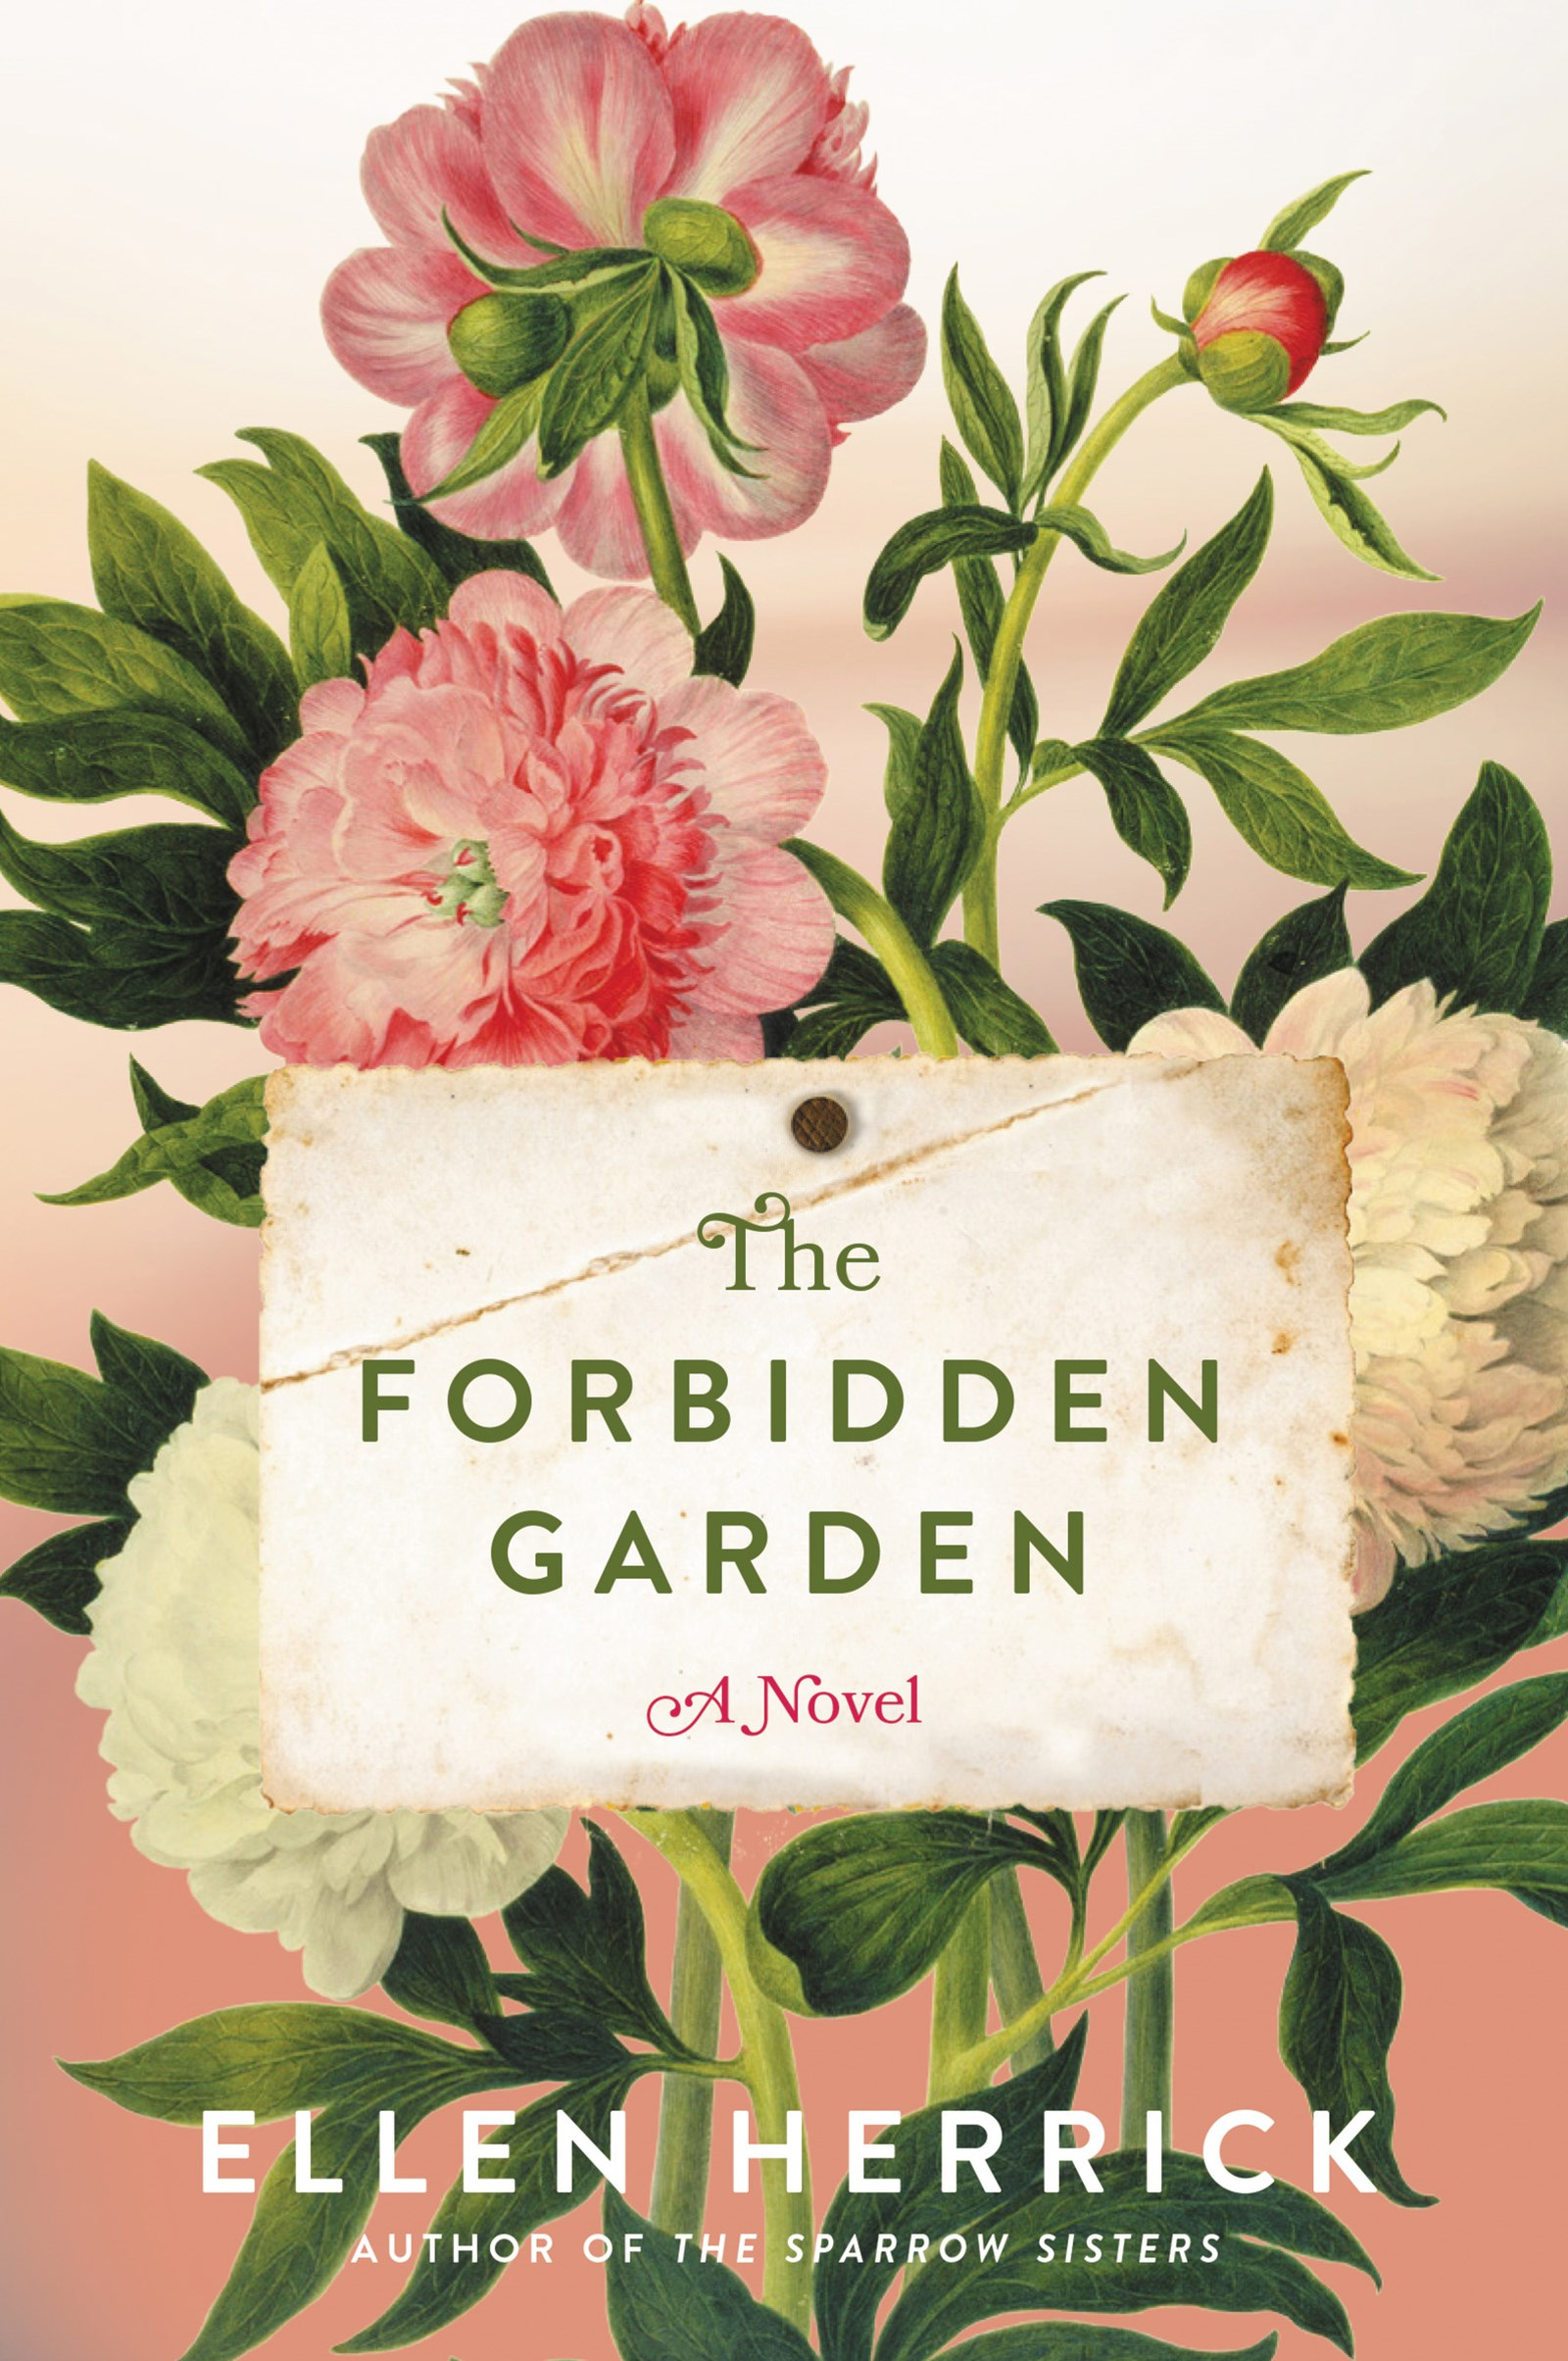 The Forbidden Garden